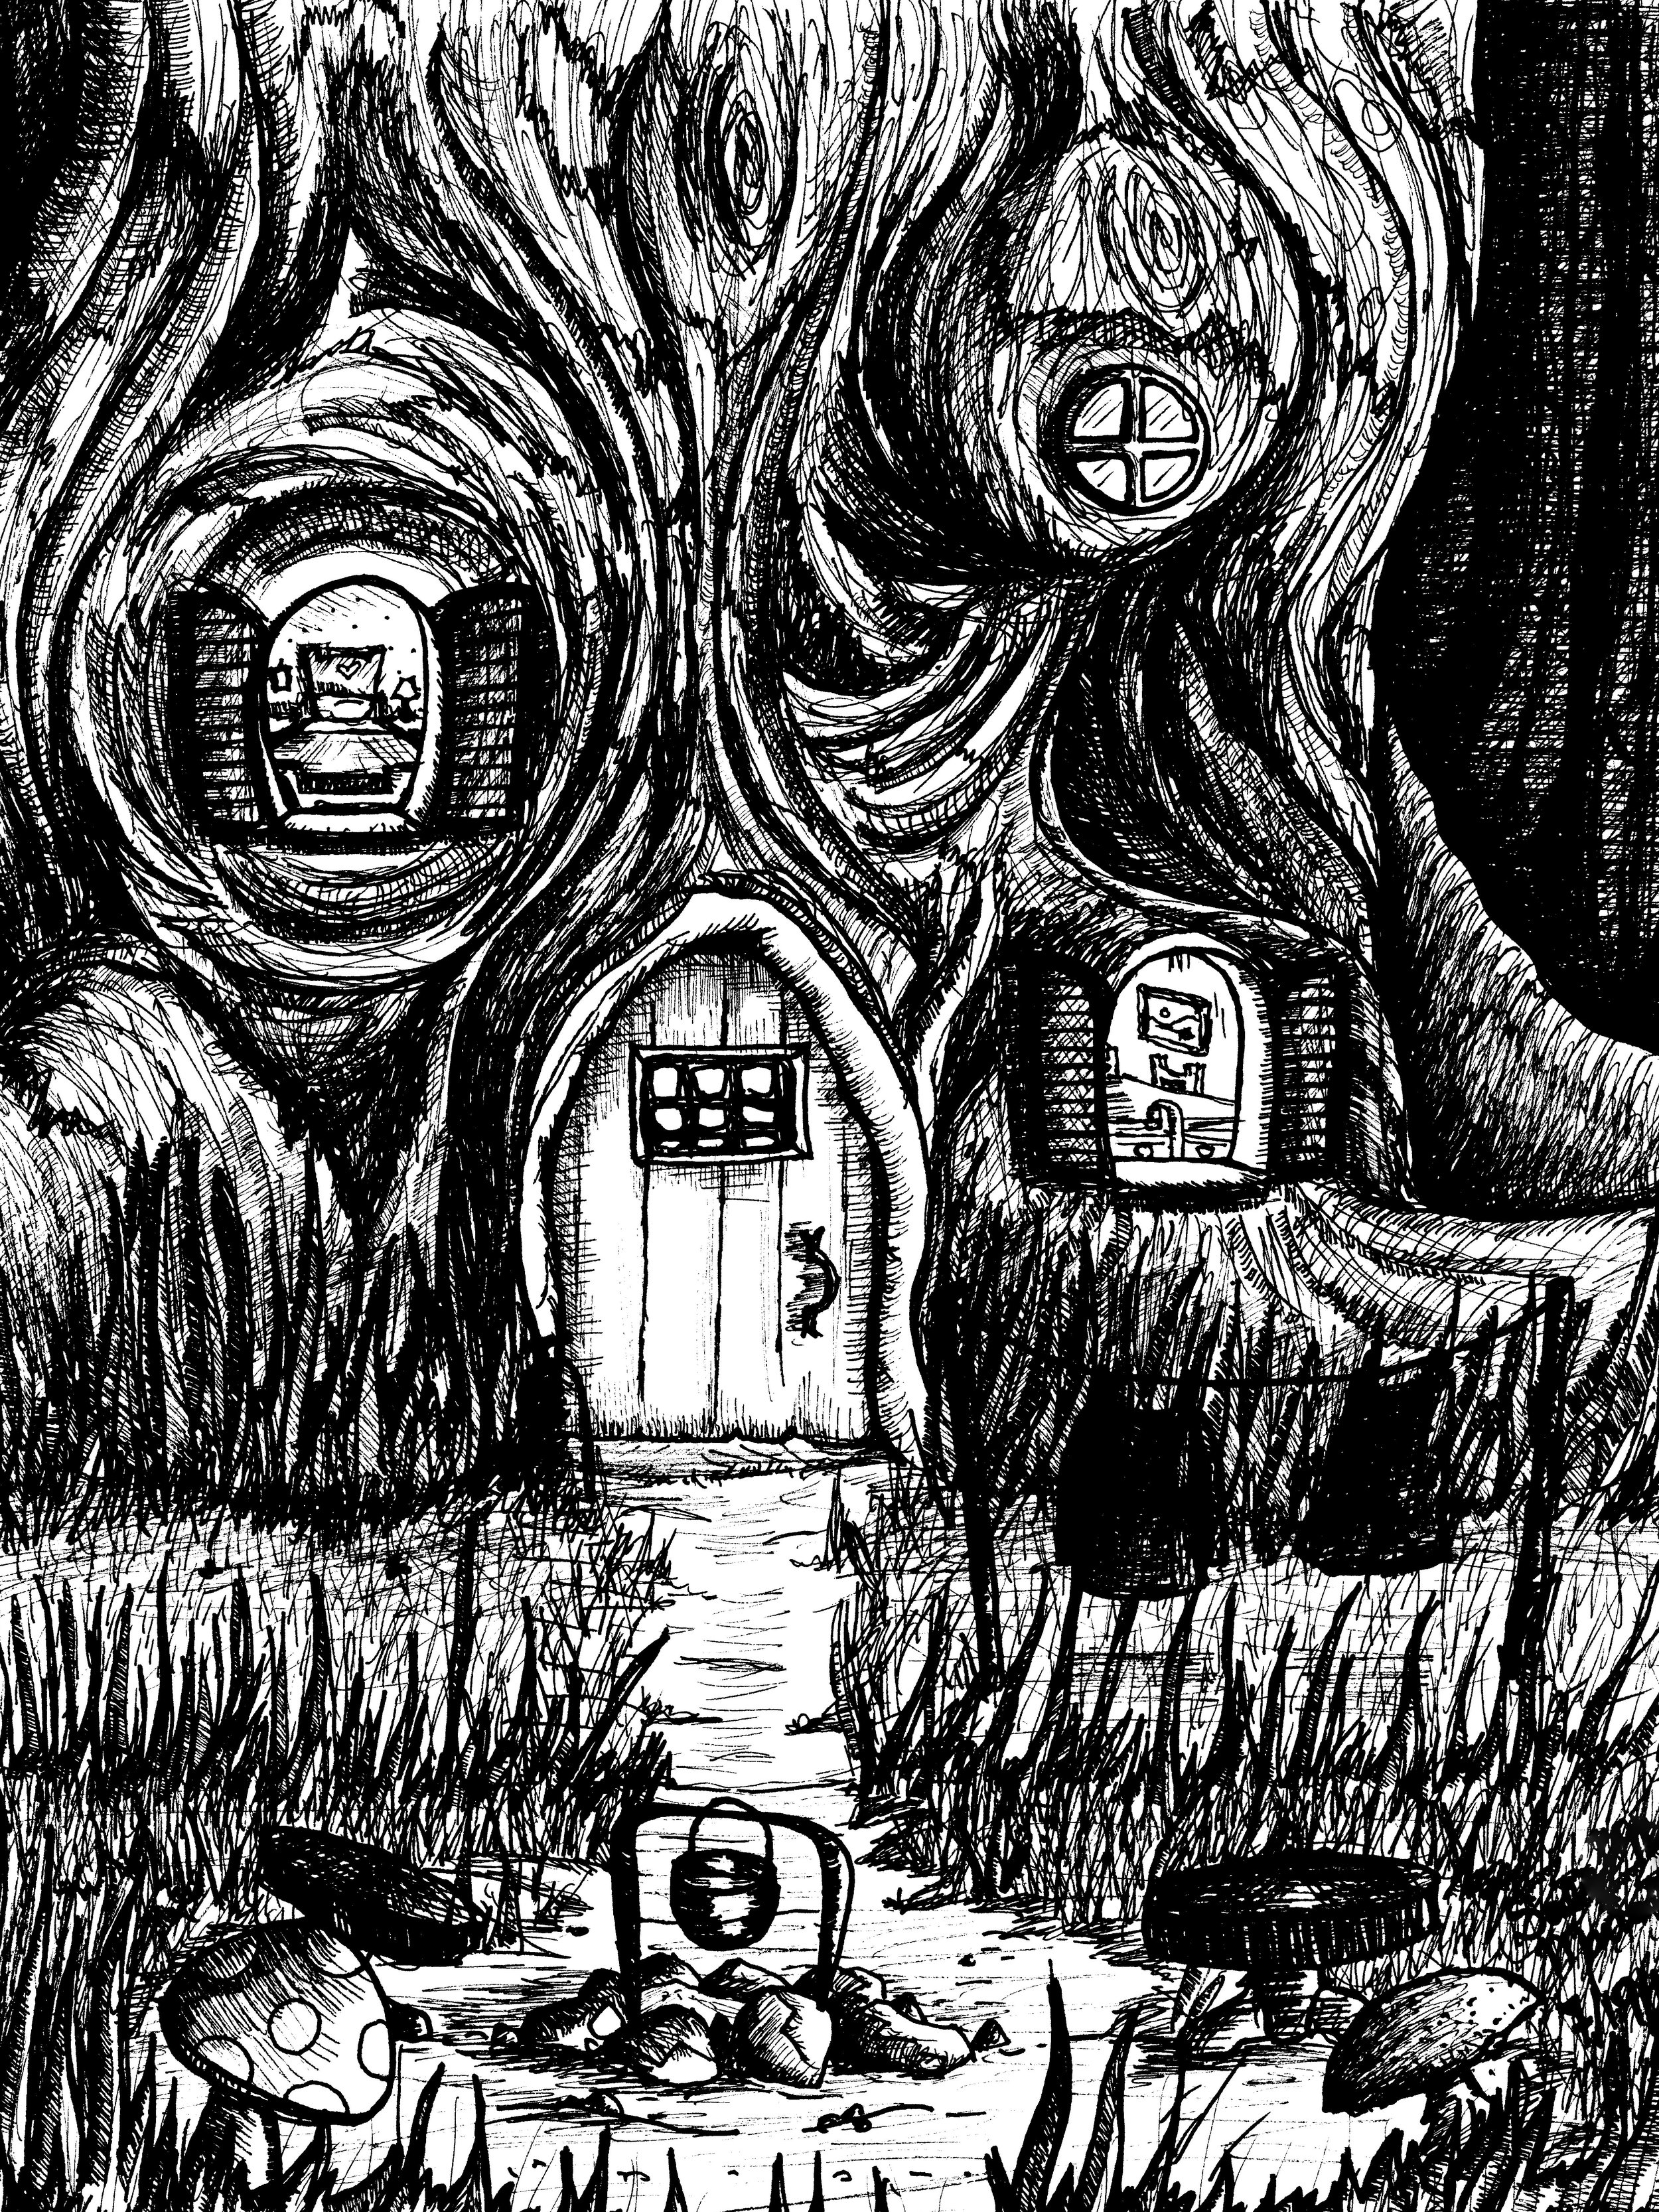 Edited Gnome Tree Home_Black and White Scan.jpg